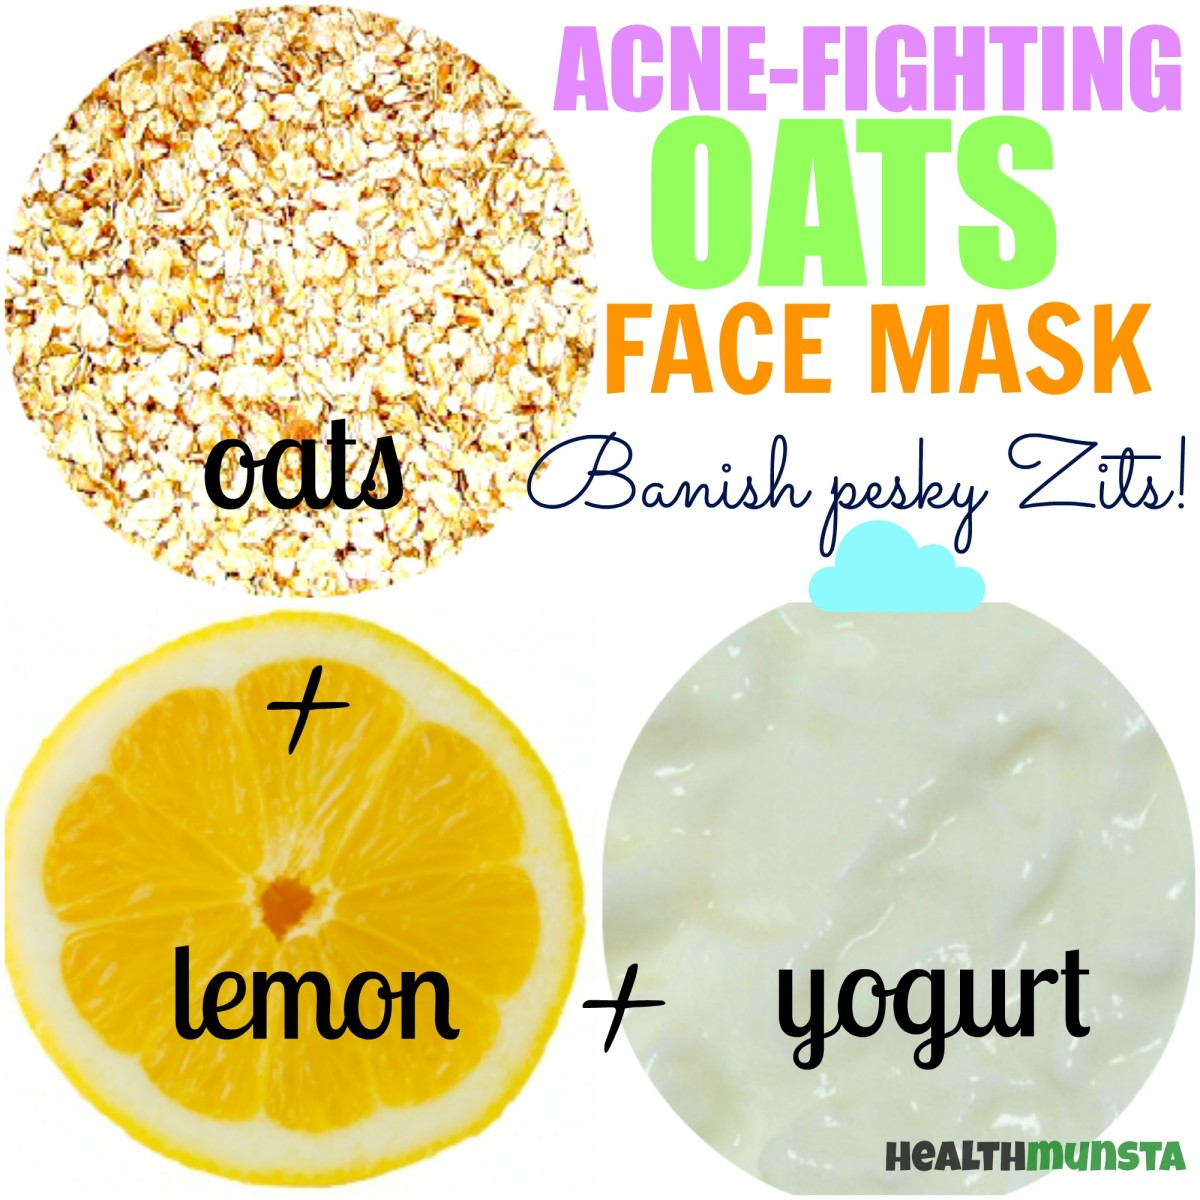 Got acne? Don't give up! Use this gentle oats face mask that's tough on zits.